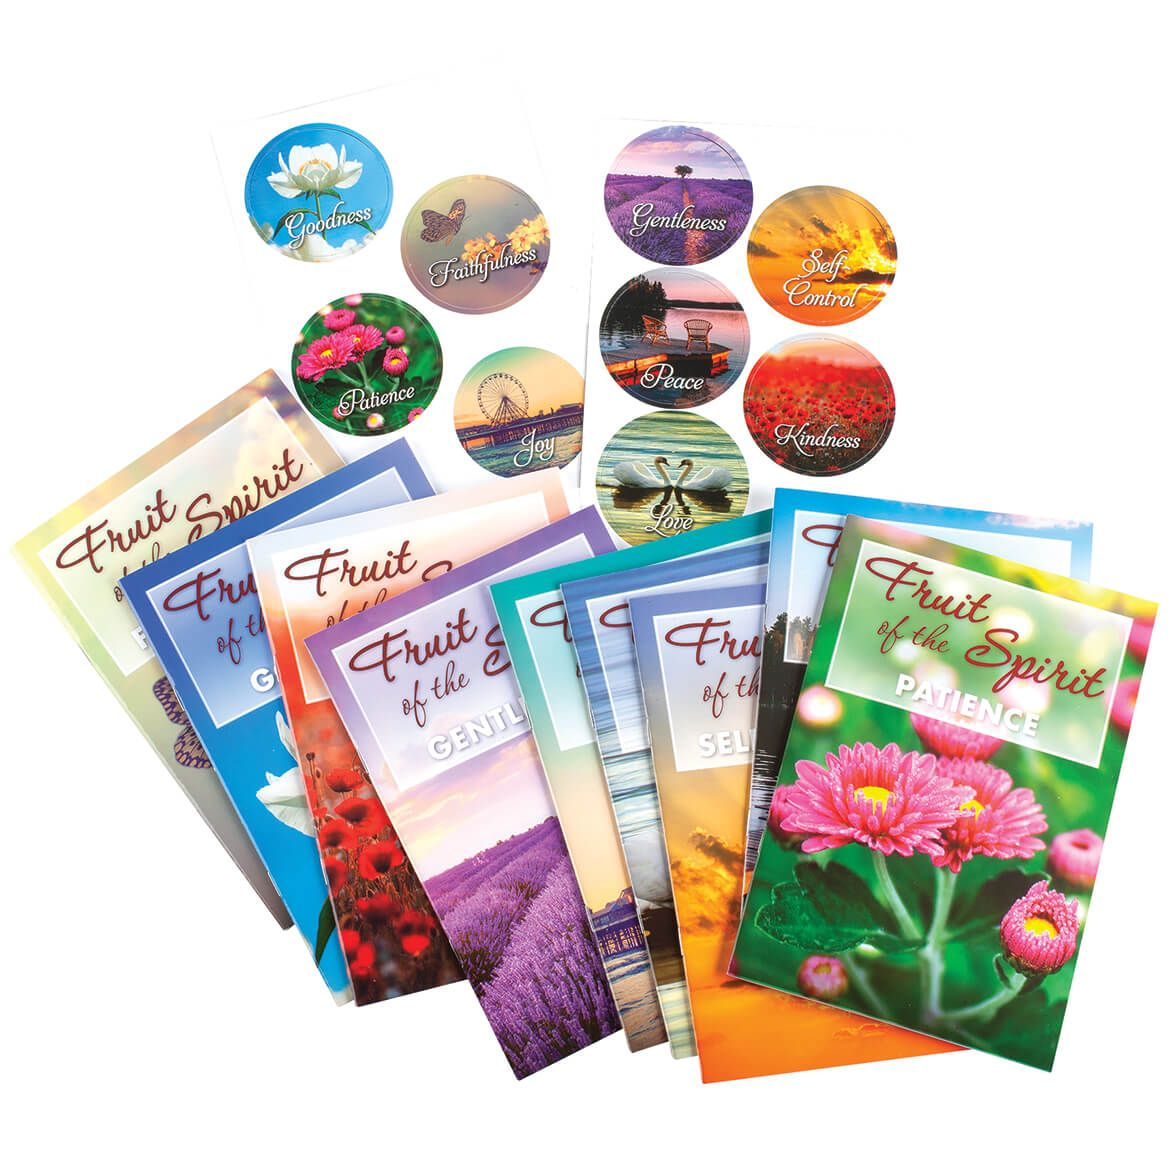 Fruit of the Spirit Books and Magnets, Set of 18-370333